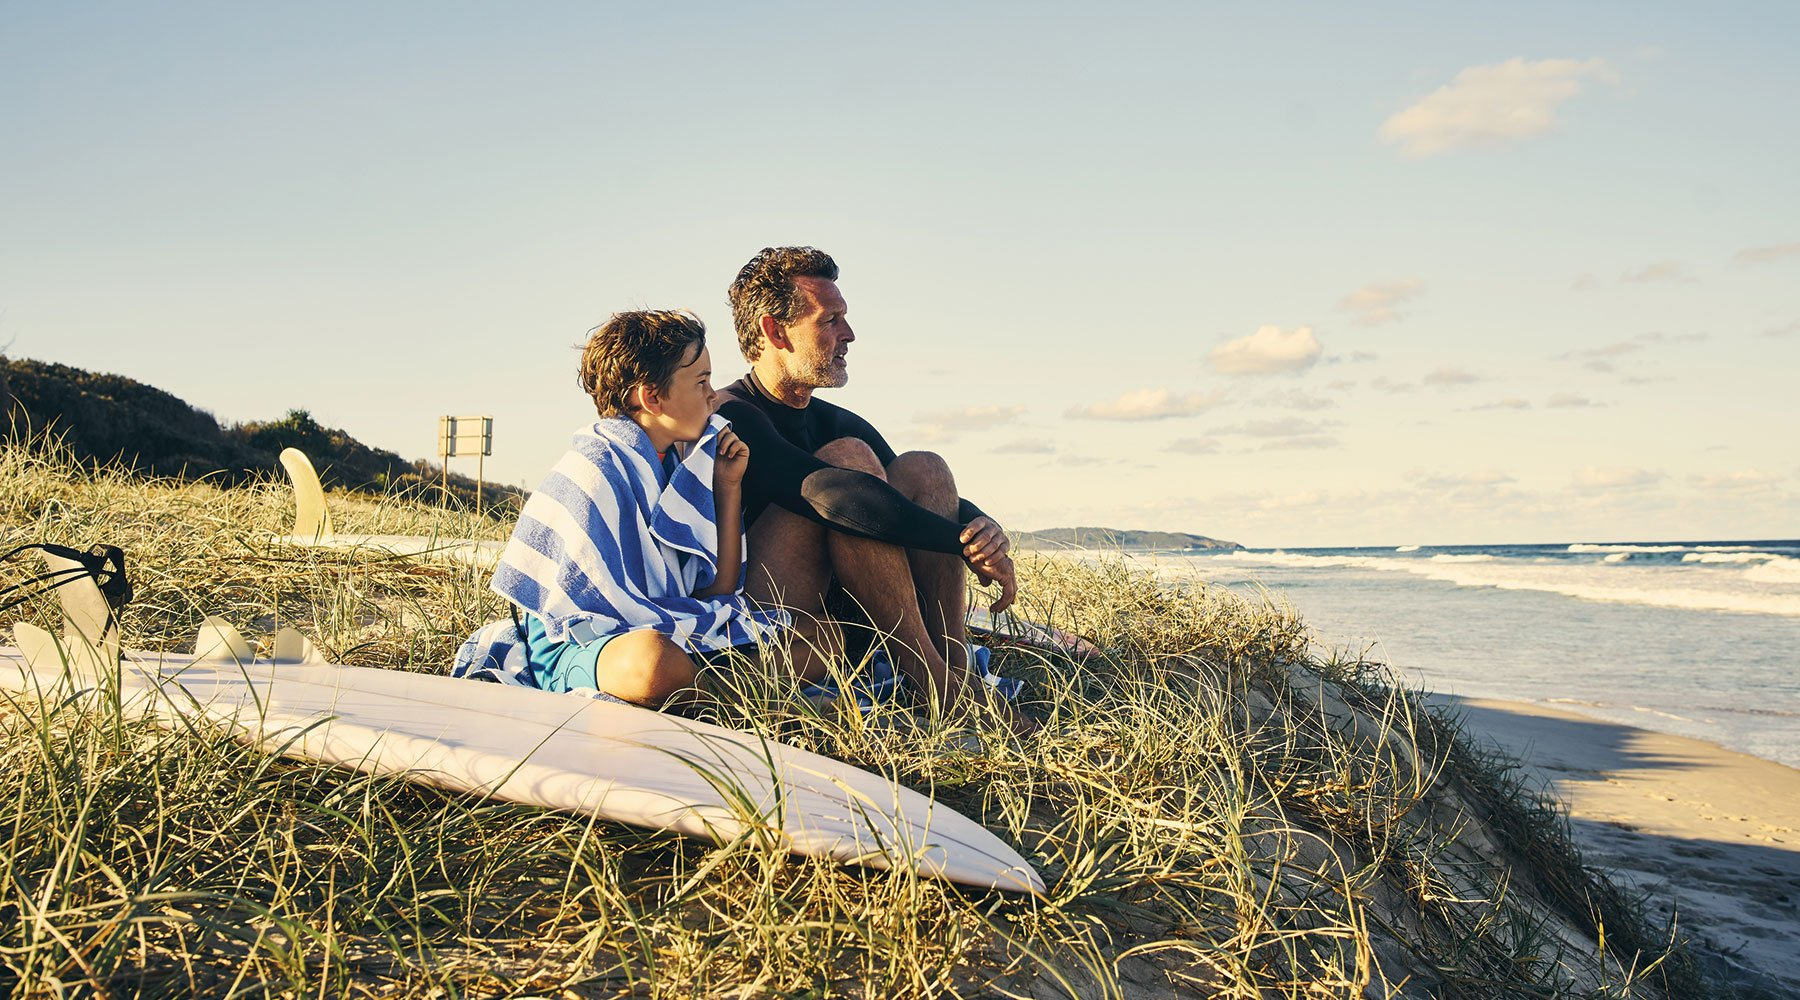 A Perth father and son sitting together on beach after surfing